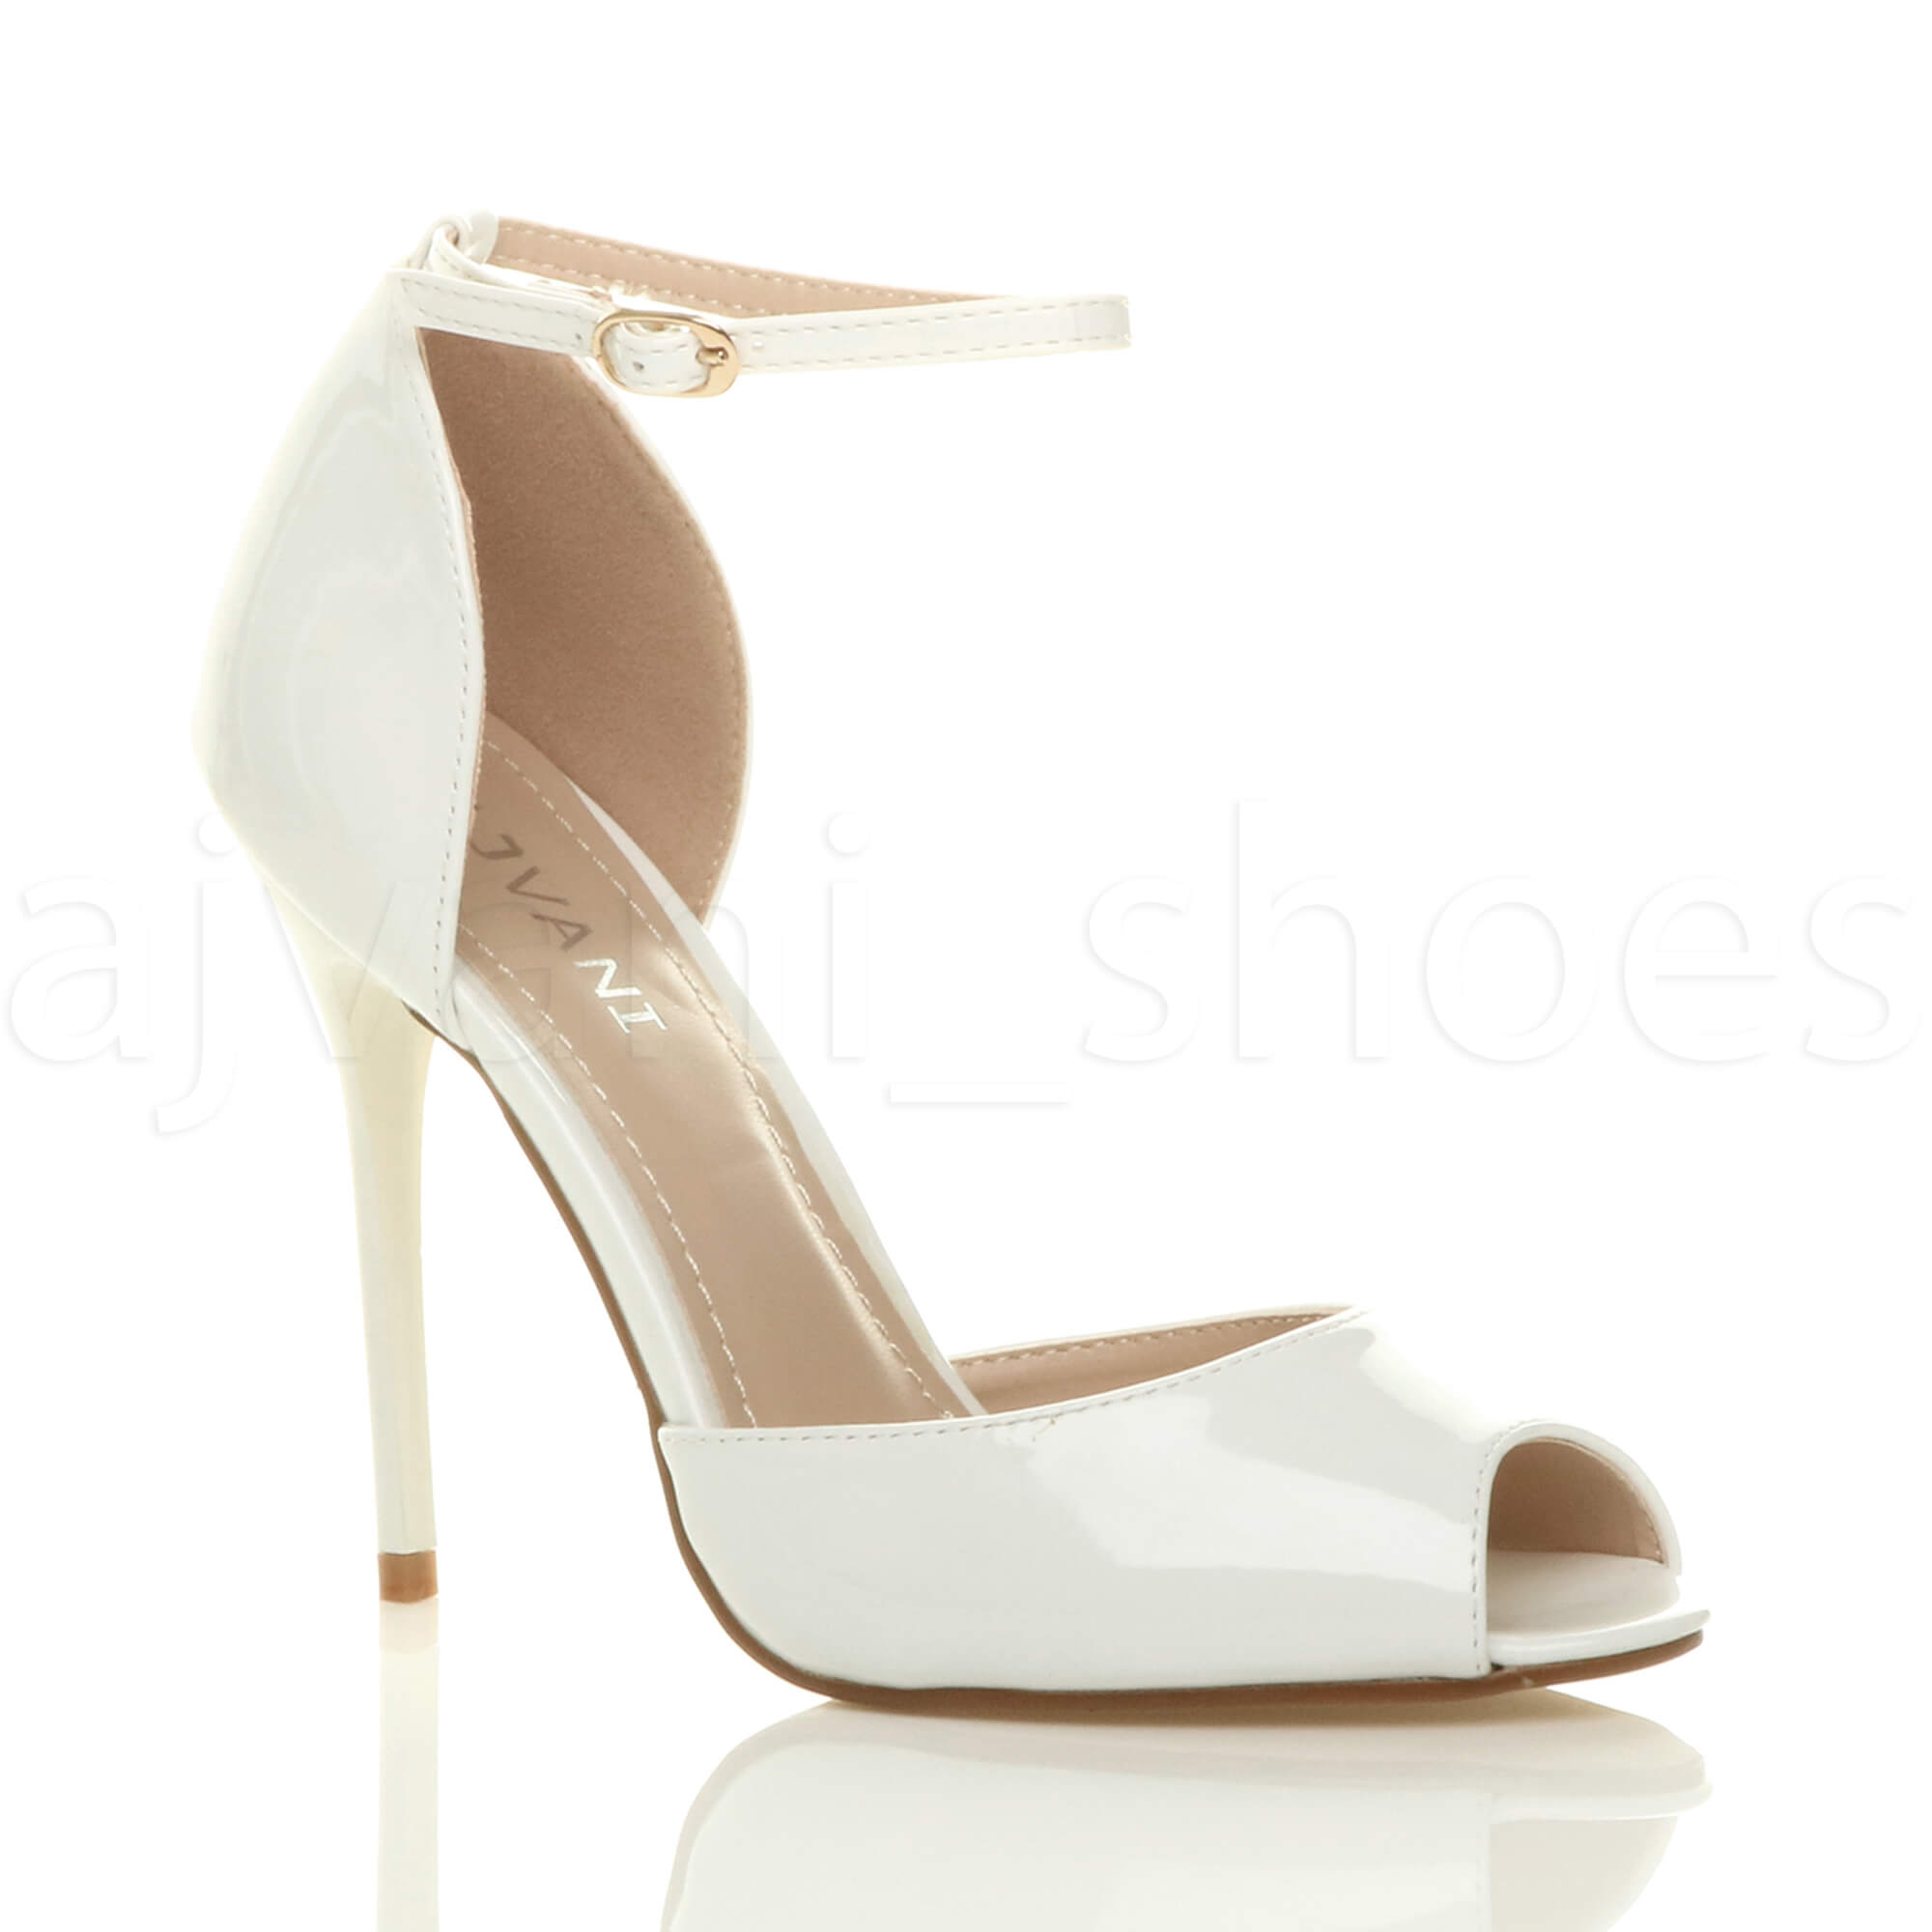 Peep Toe Bridal Shoes With Strap